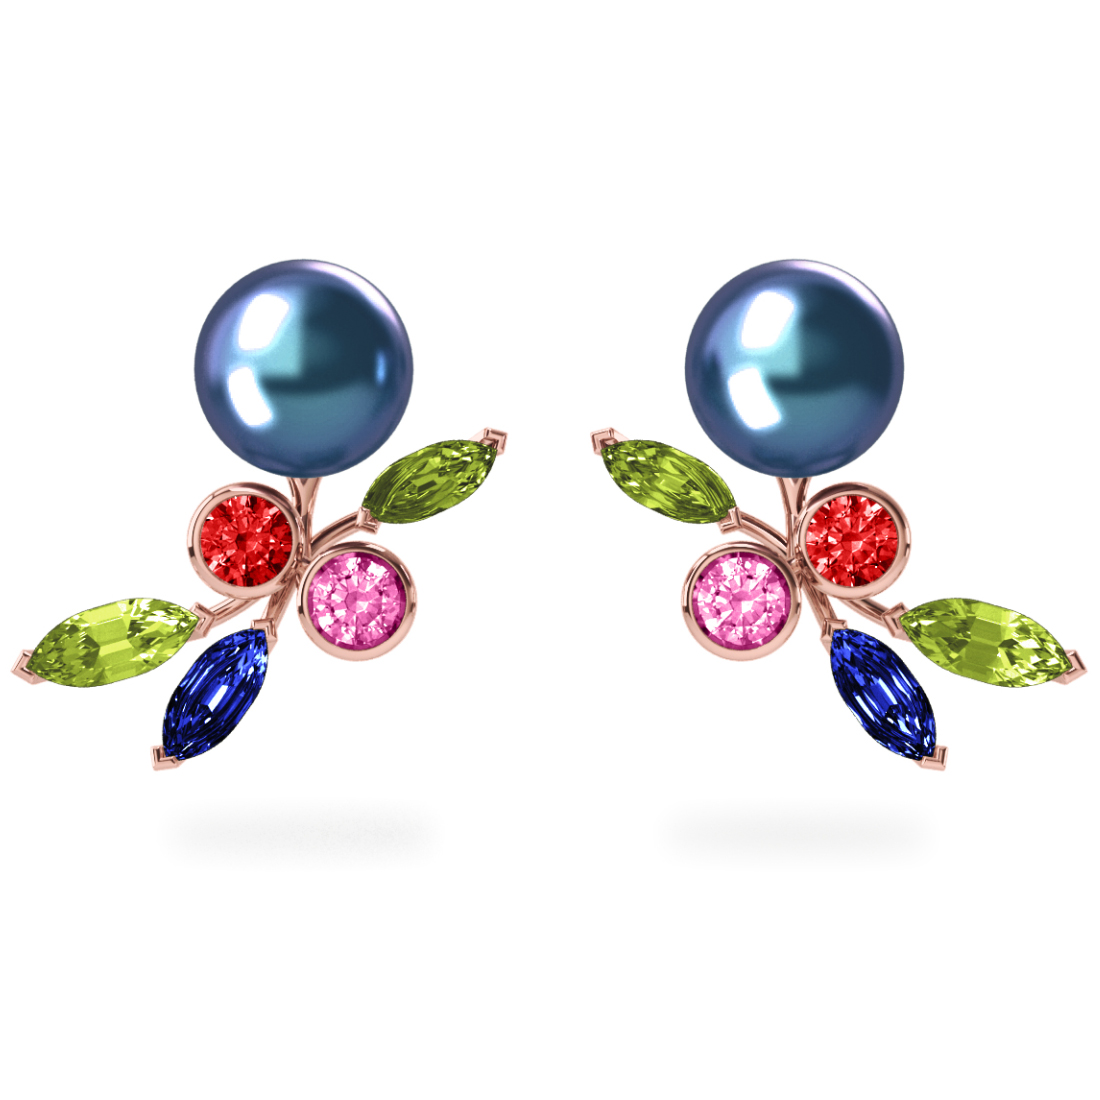 Boucles d'oreilles My Angel Peacock Céleste - Saphirs, diamants, peridots & perles de Tahiti <br /> Or rose 18 carats